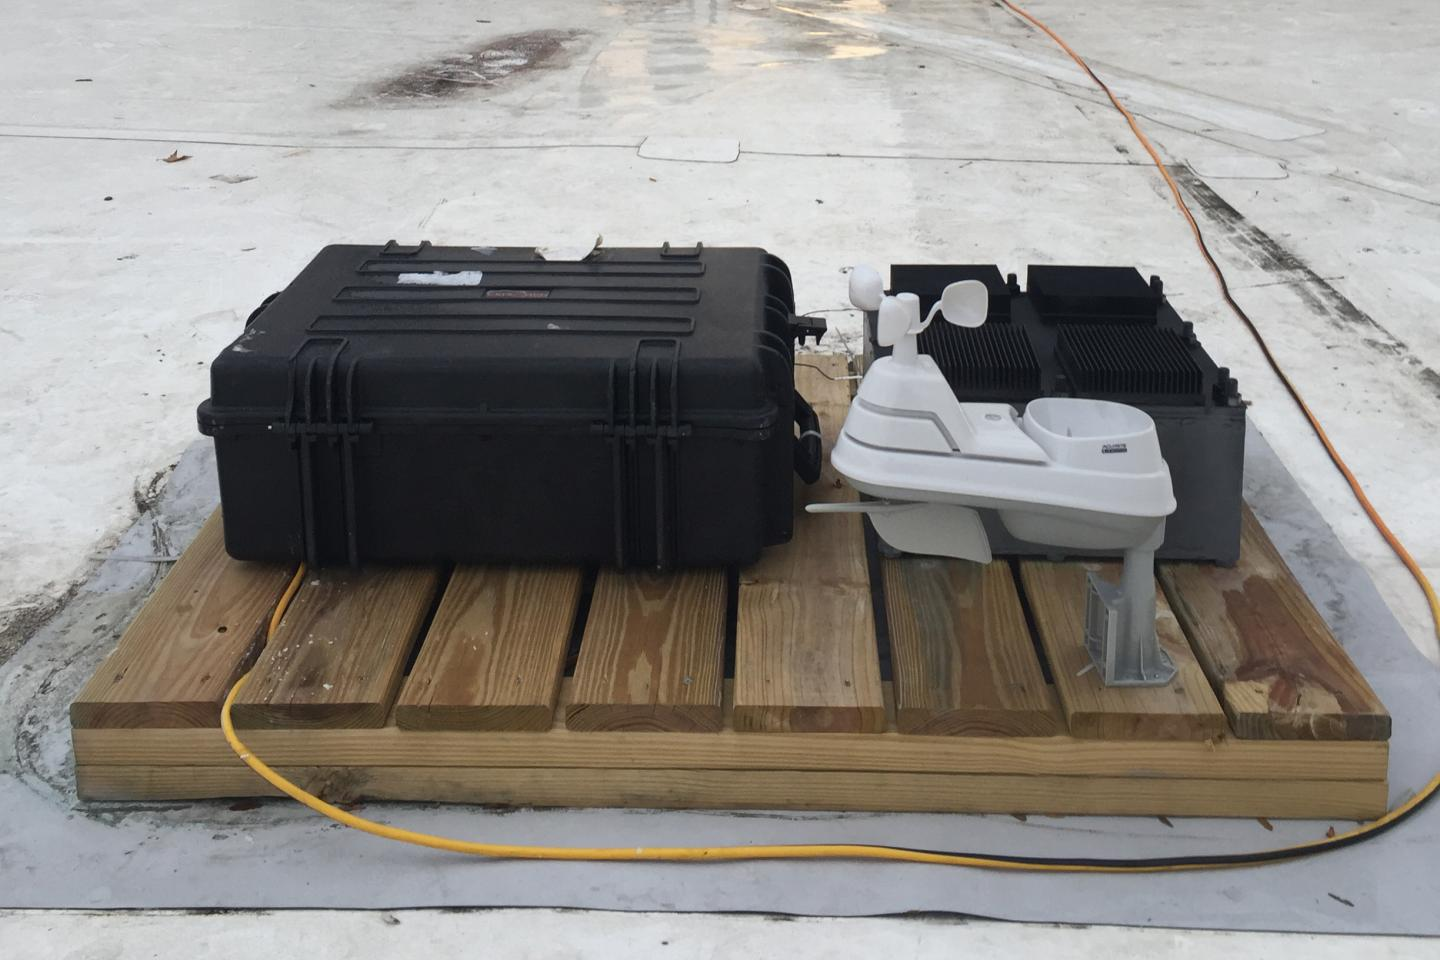 The team's test device, which has been deployed on the roof of an MIT building for several months, was used to prove the principle behind their new energy-harvesting concept.  (Source: Justin Raymond)